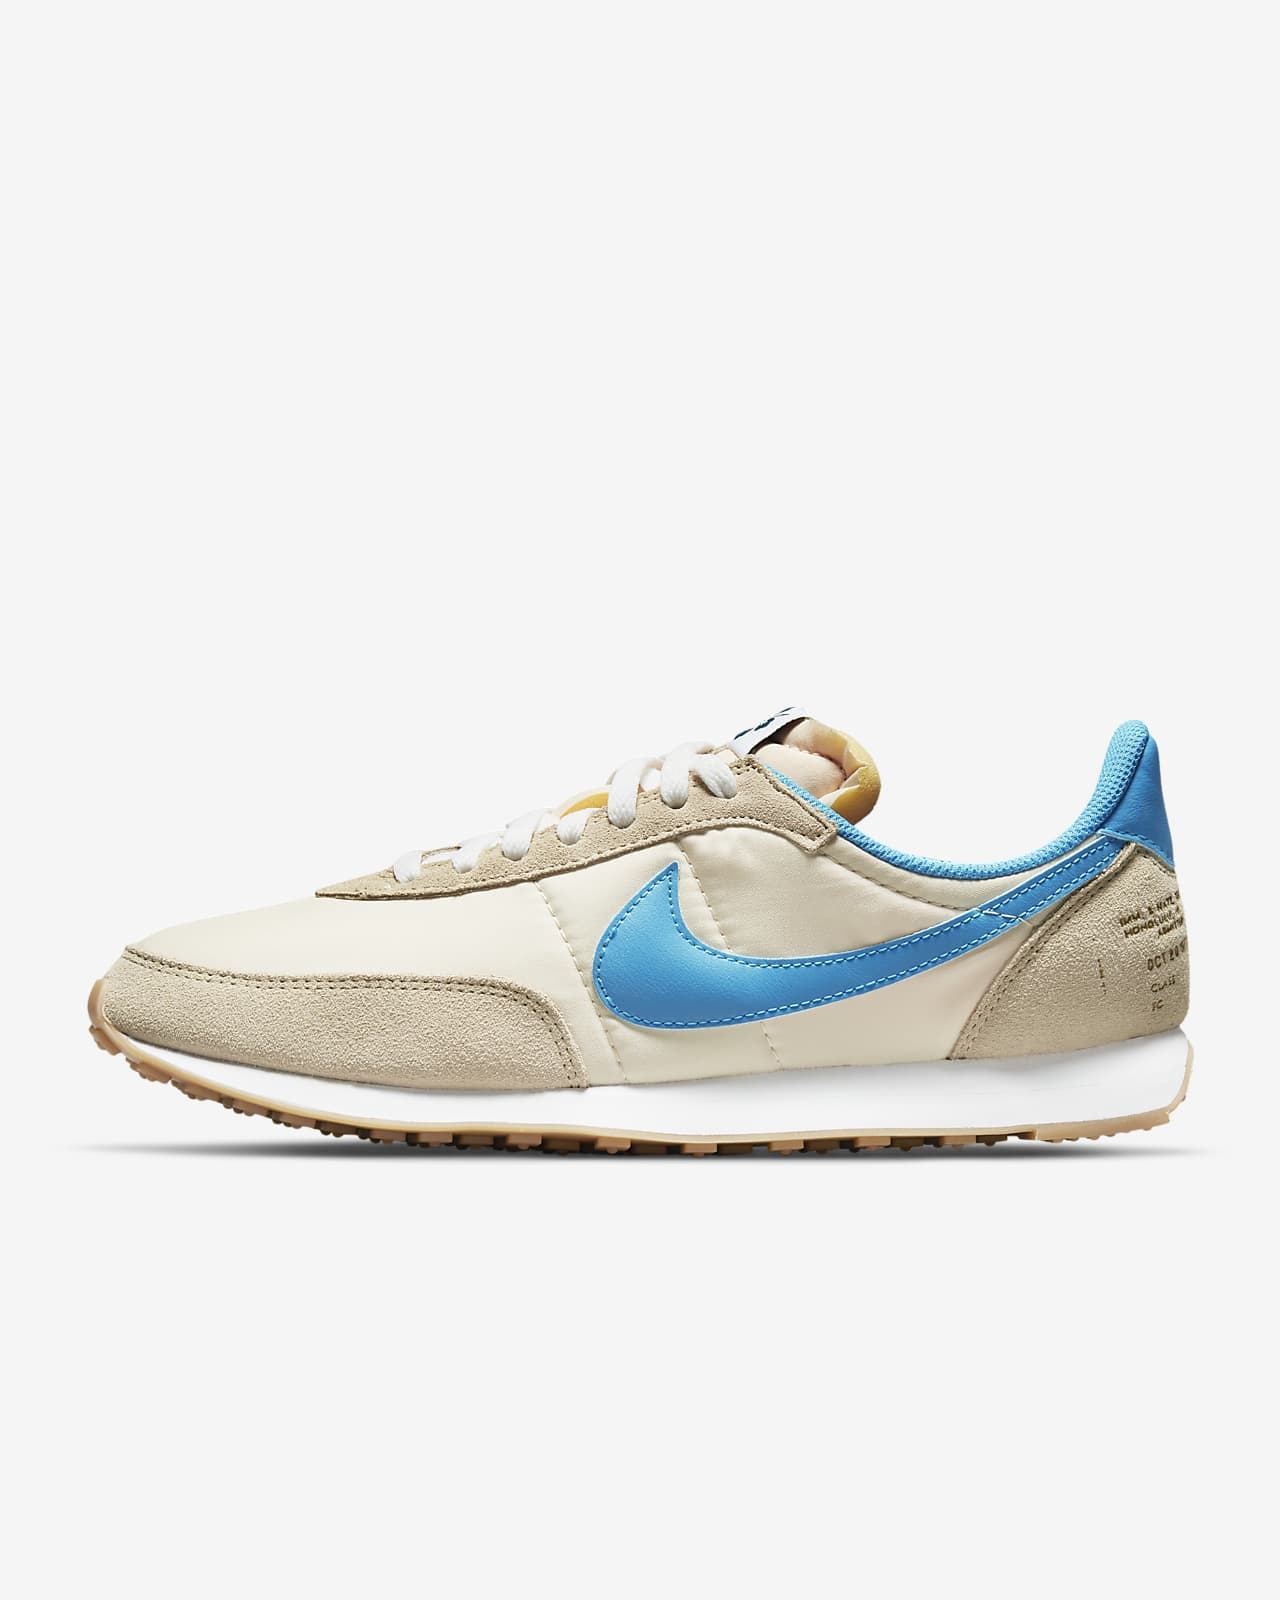 Nike Waffle Trainer 2 S.D. Men's Shoes